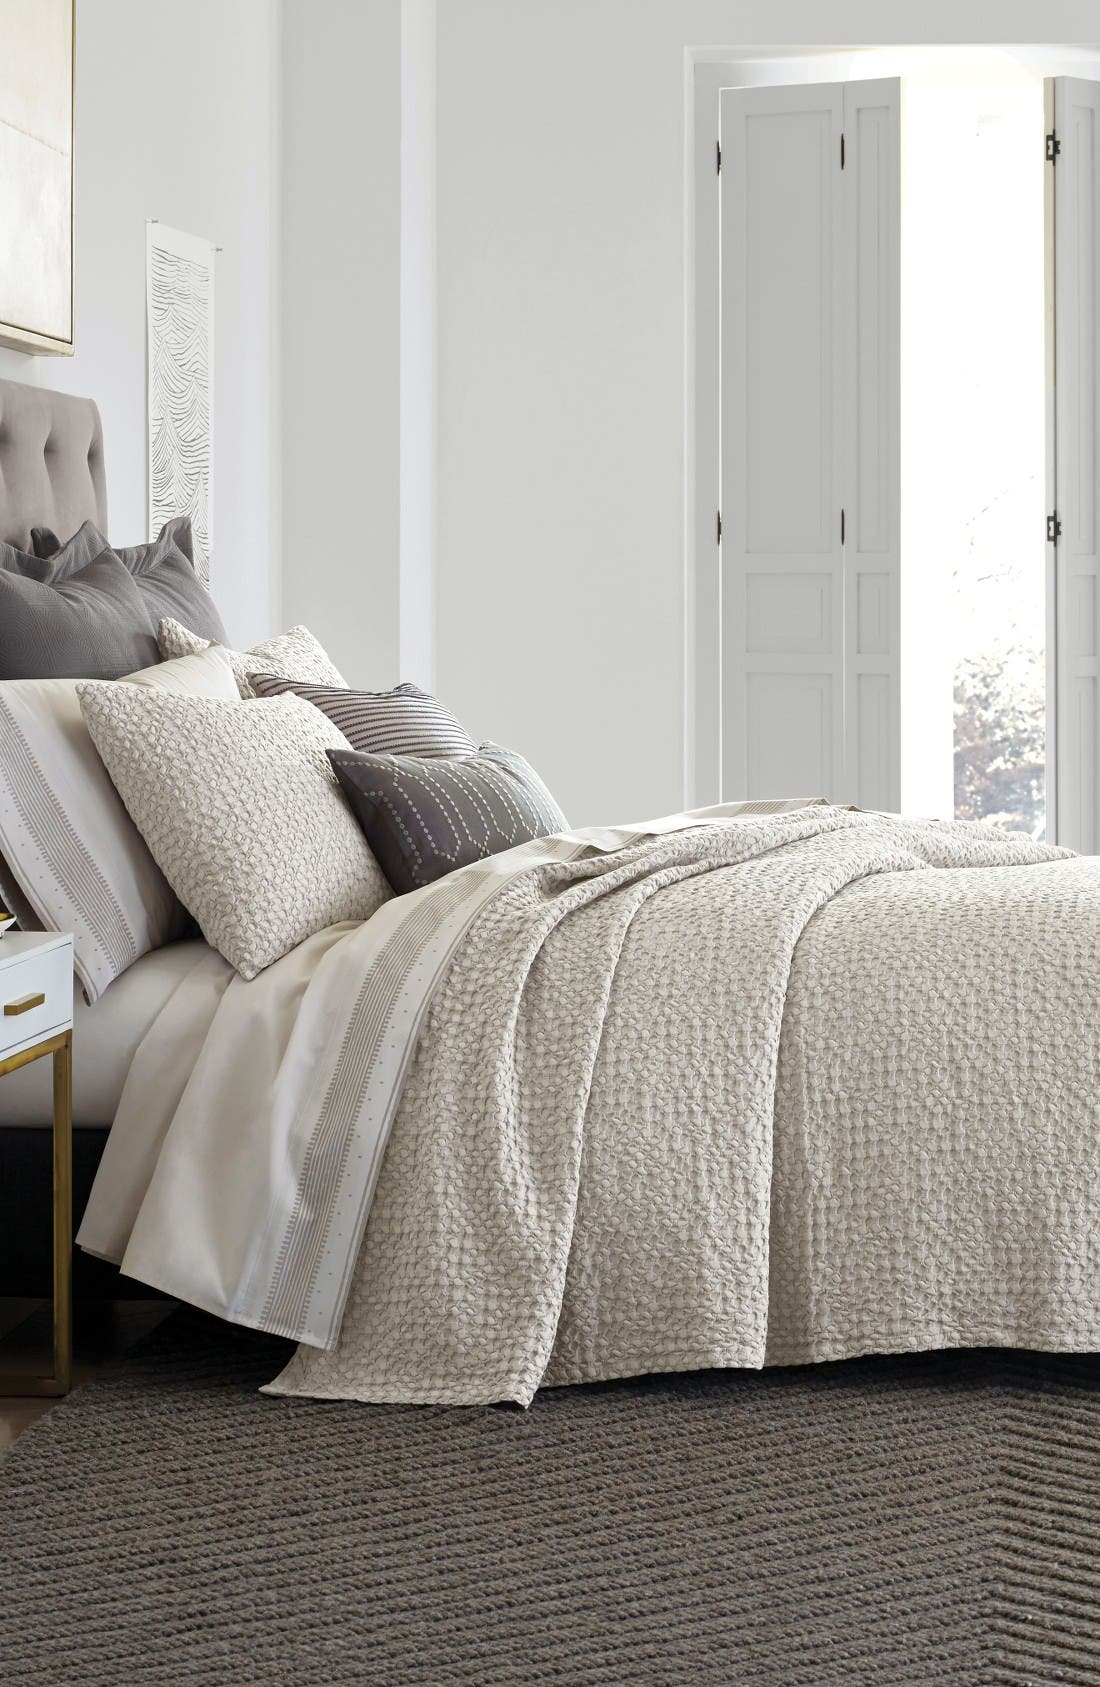 Main Image - DwellStudio Thayer Coverlet